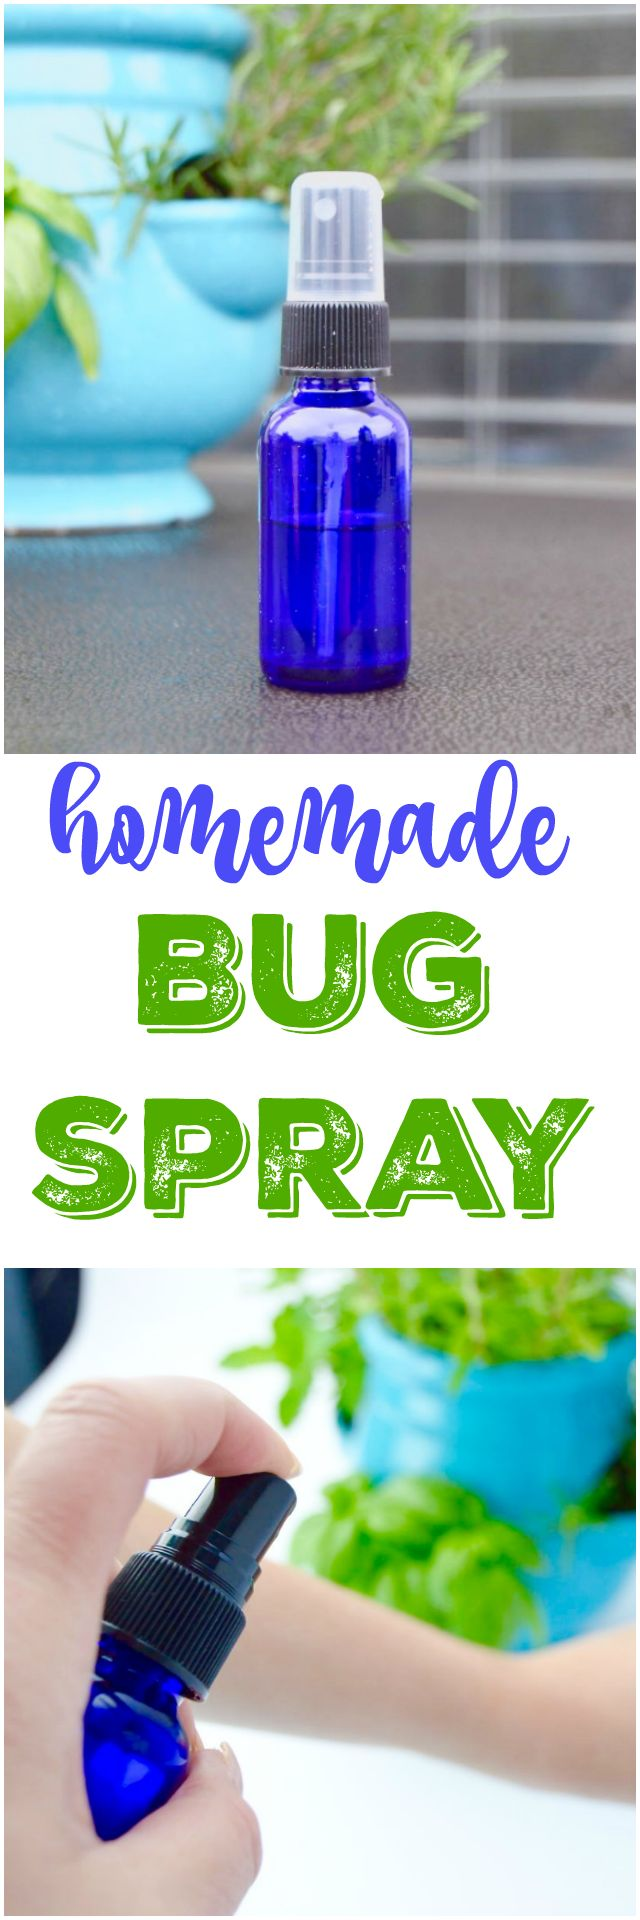 Easy homemade bug spray recipe. DIY your own chemical free bug spray that is safe for kids and the environment too. A simple recipe using household ingredients and essential oils. via @Mom4Real